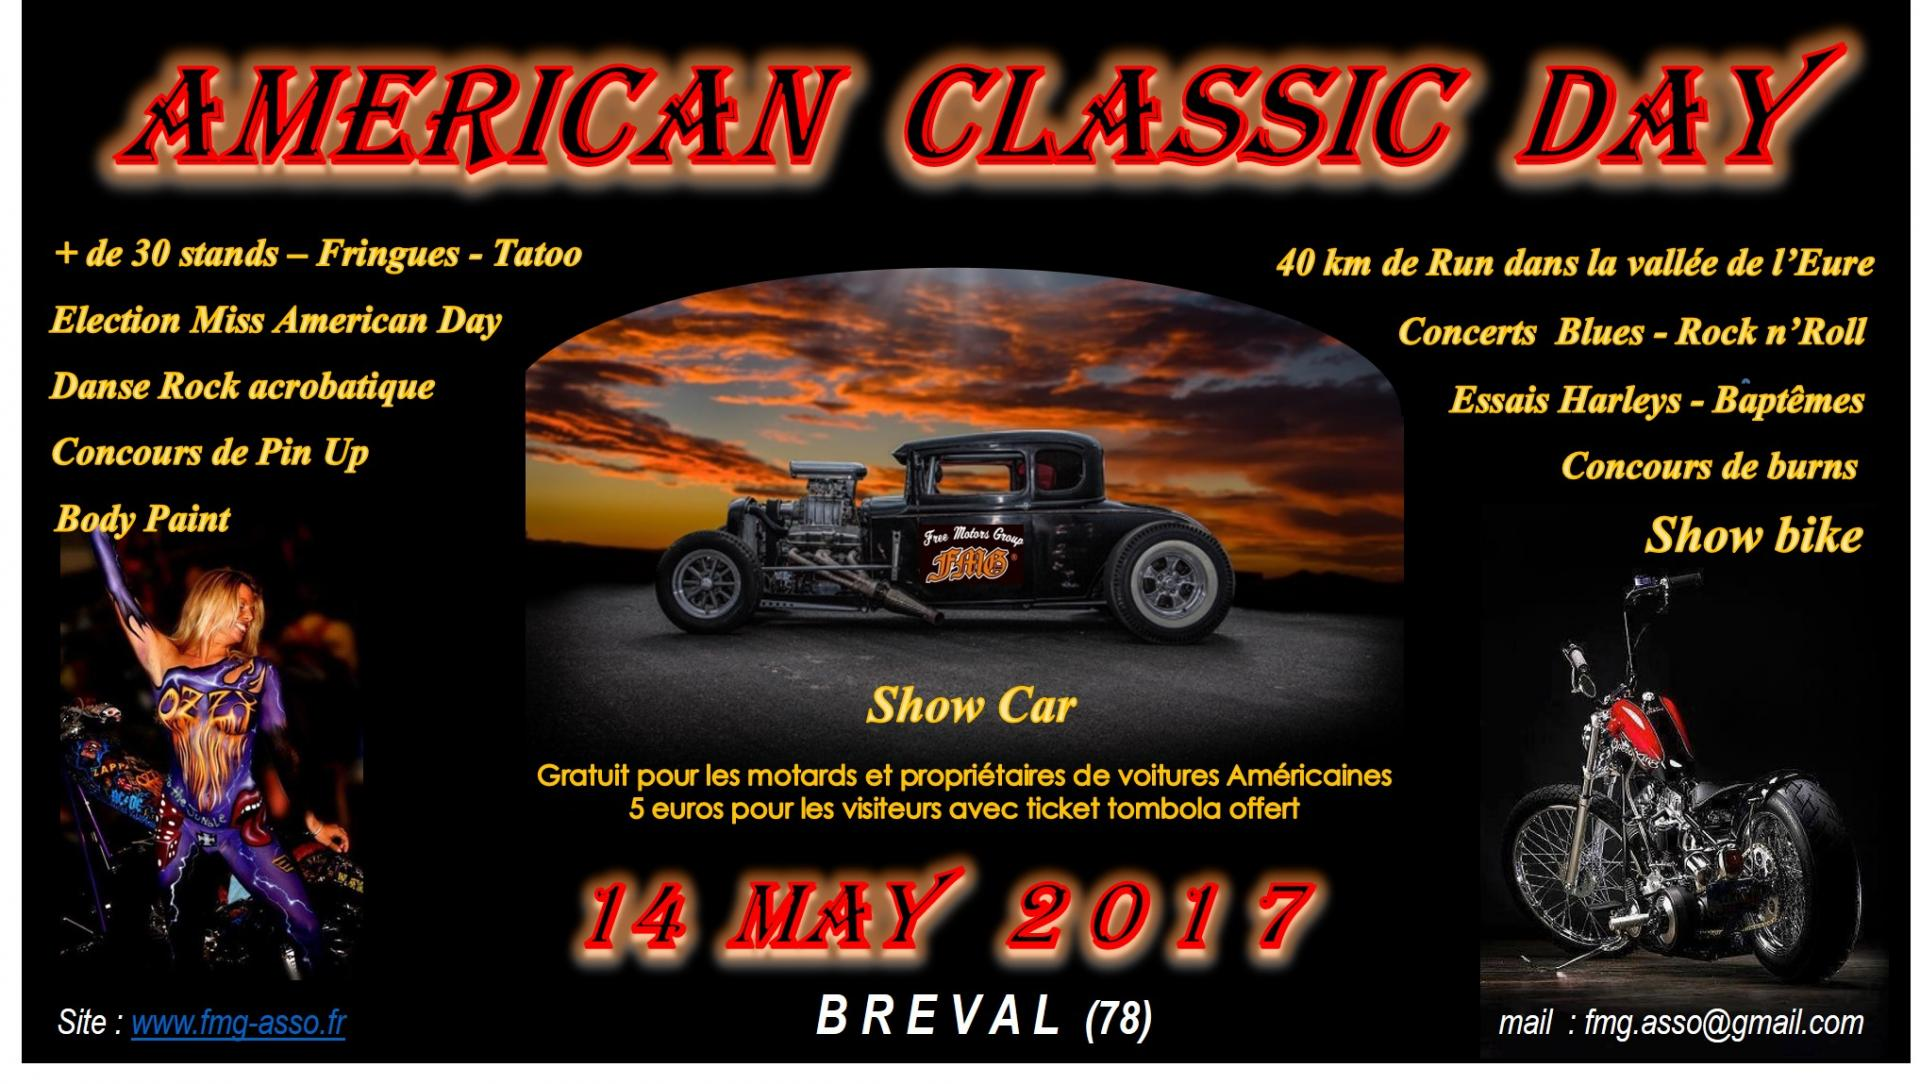 5ieme american classic day